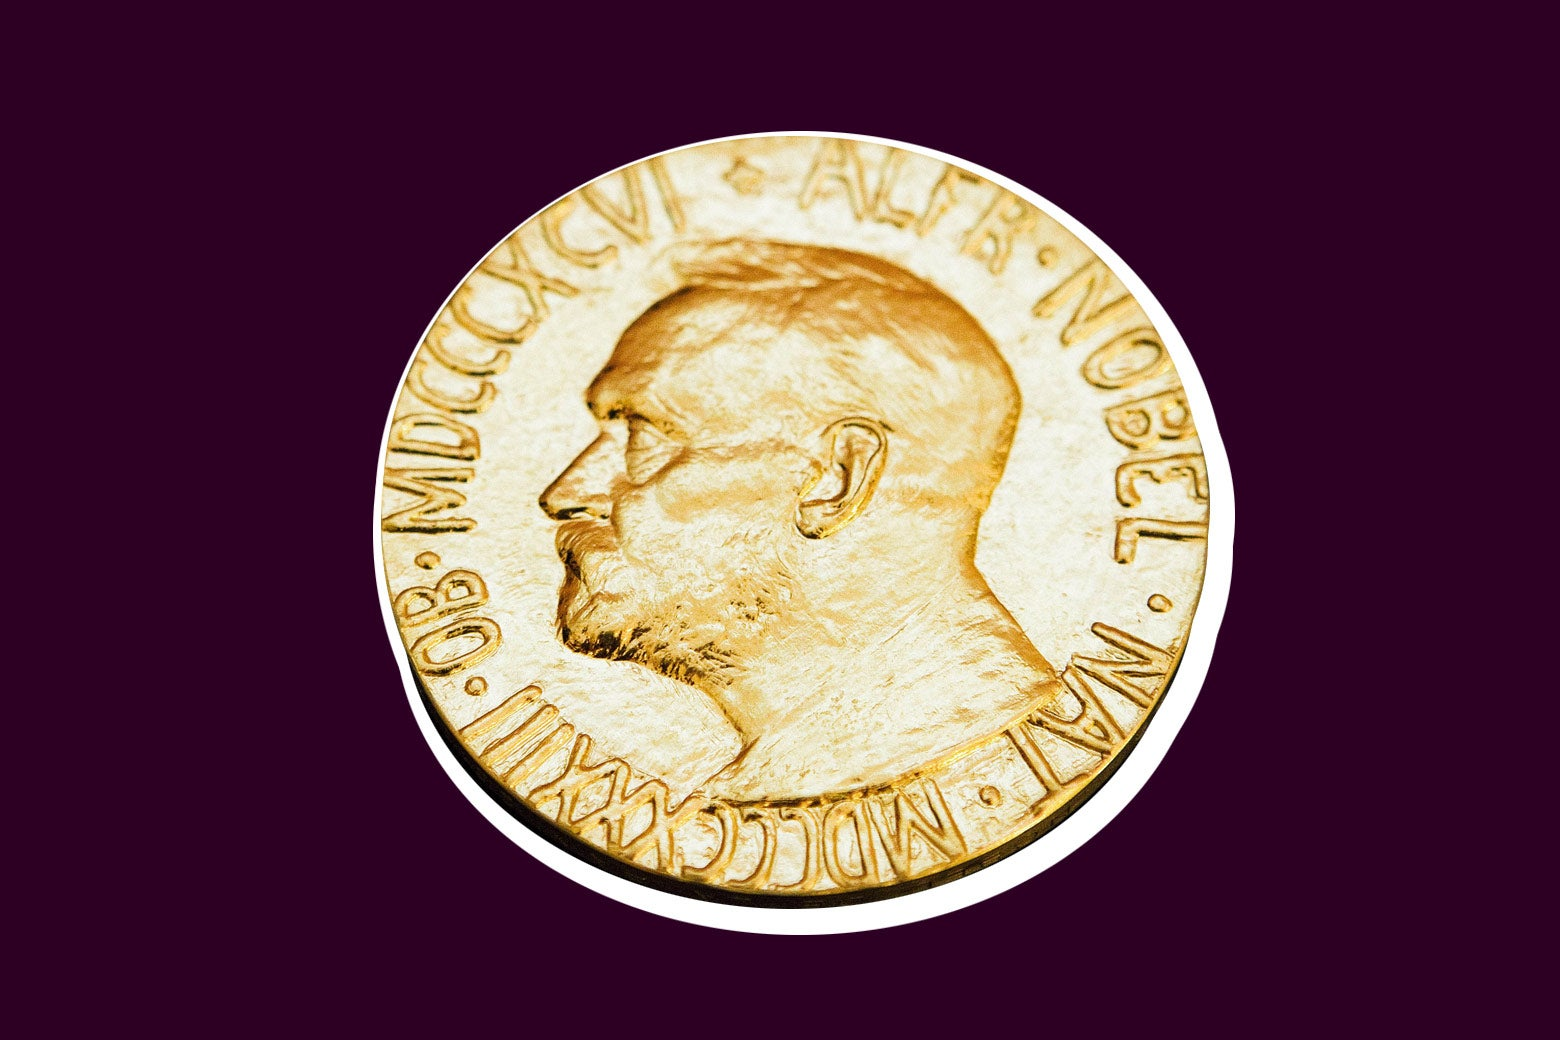 Nobel medal awarded to the Nobel Peace Prize laureate for 2010.